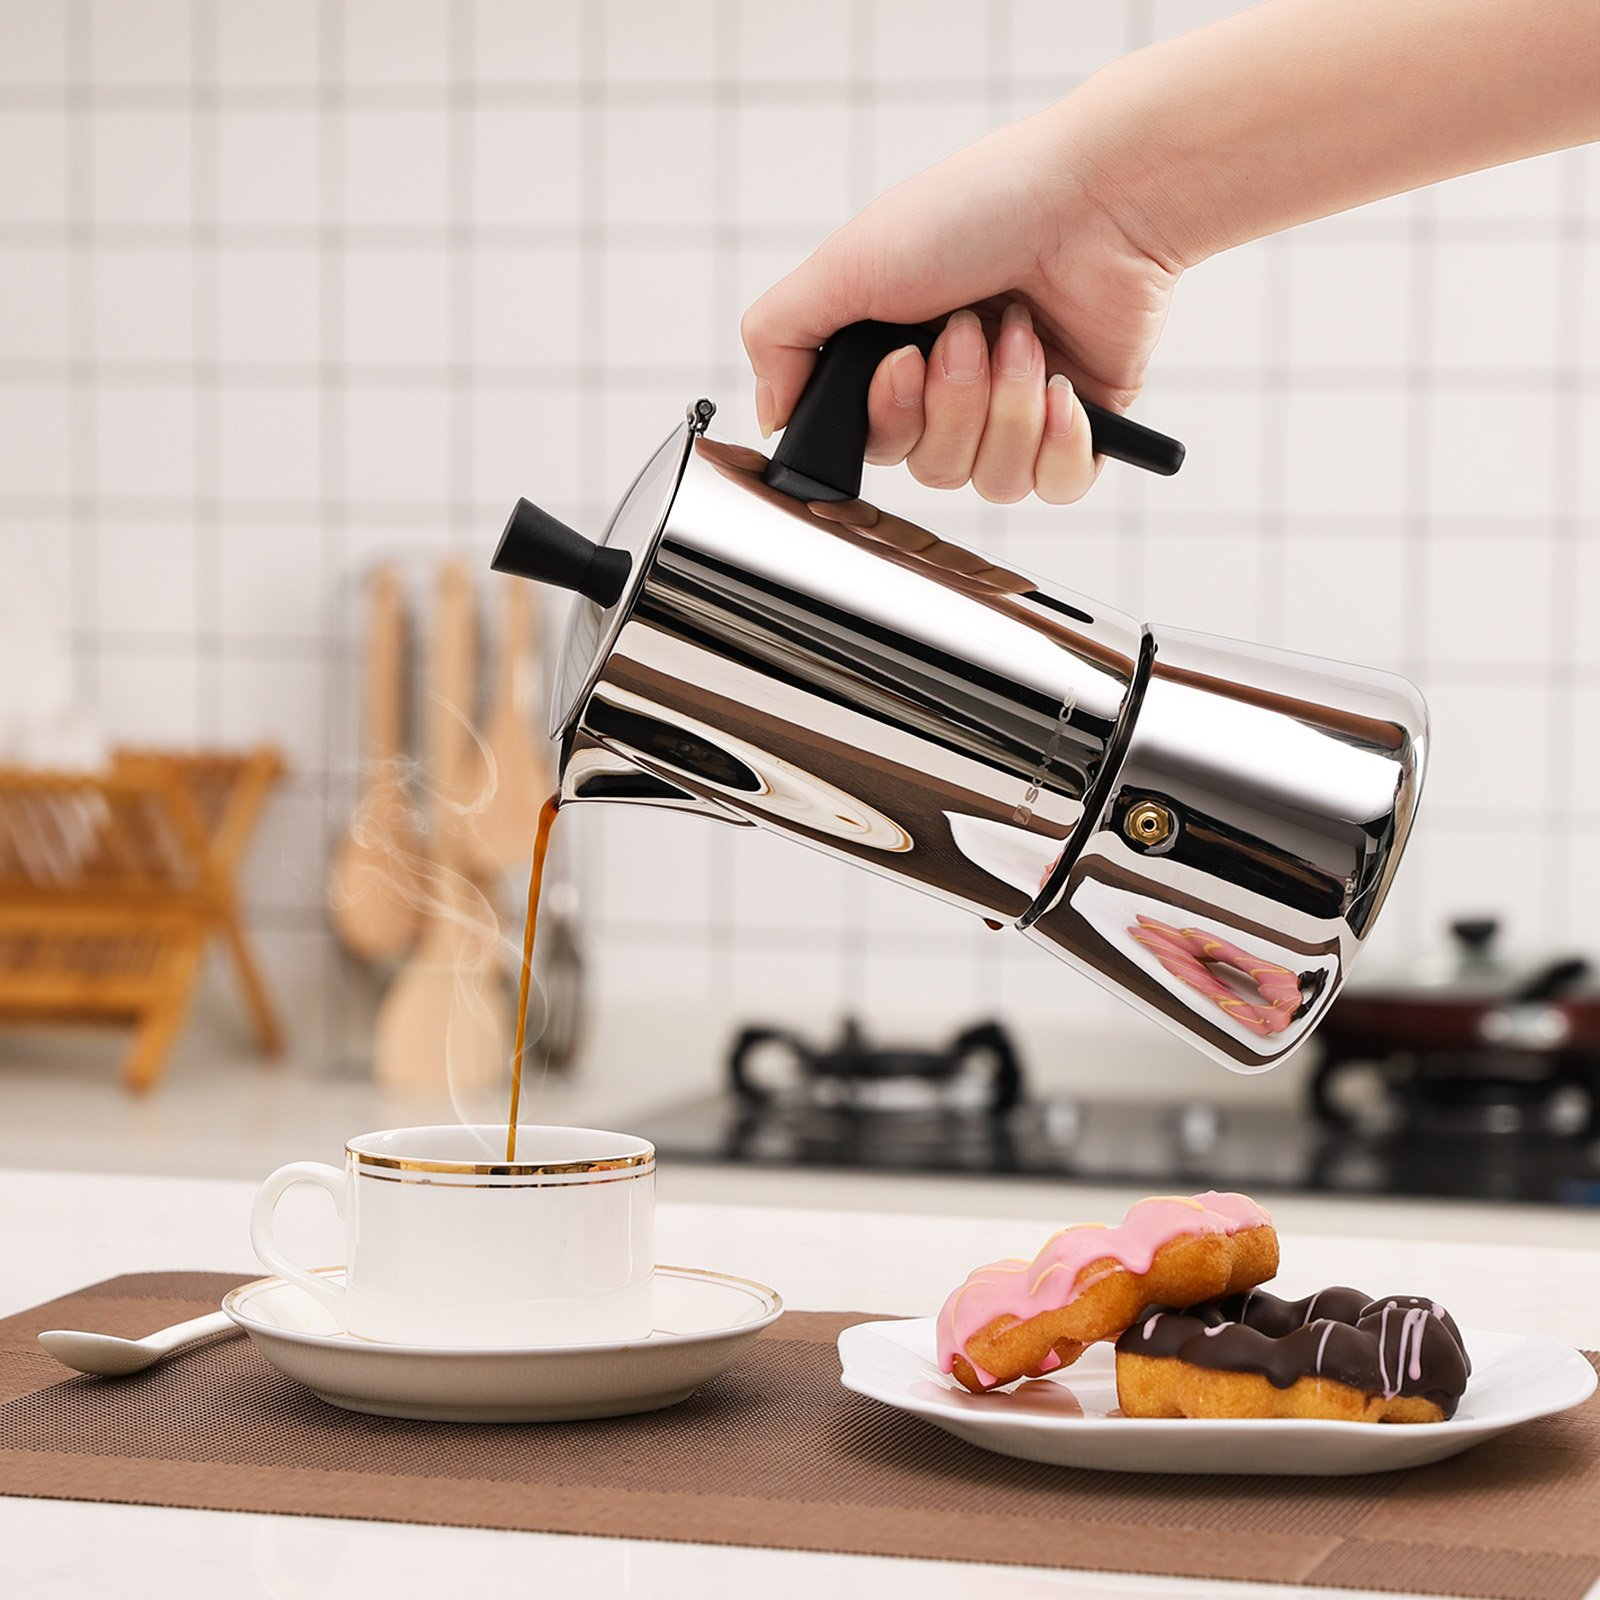 SONGMICS 6-Cup Stovetop Espresso Coffee Maker Moka Pot with Patented Valve, 18/8 Stainless Steel UKEM10BK by SONGMICS (Image #3)